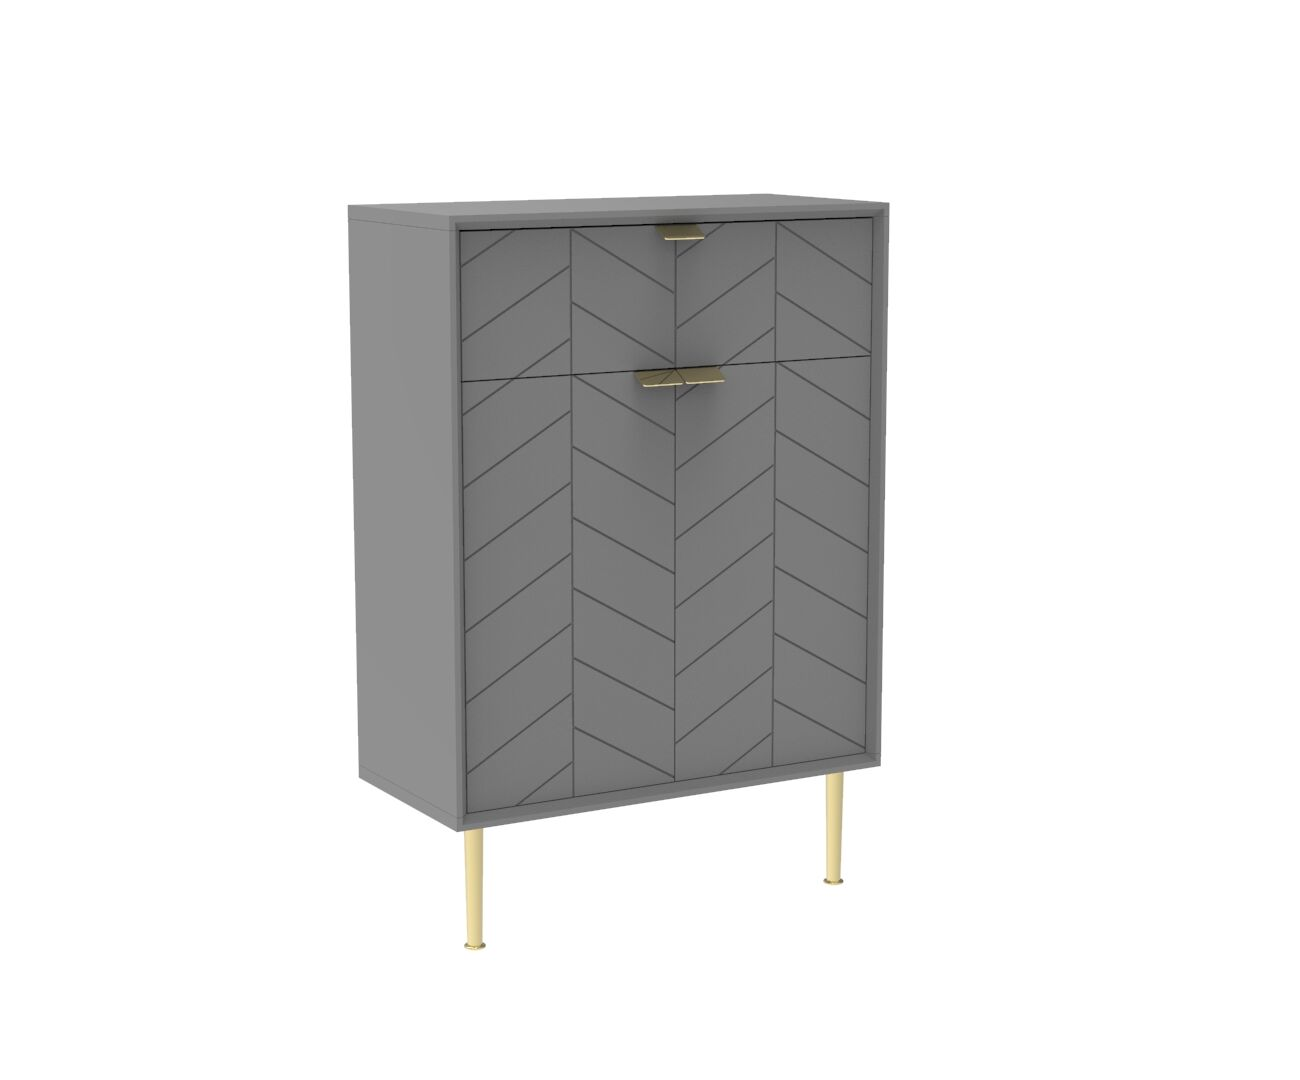 Chevron-patterned Adele Compact Bureau in Mist Grey and Brass